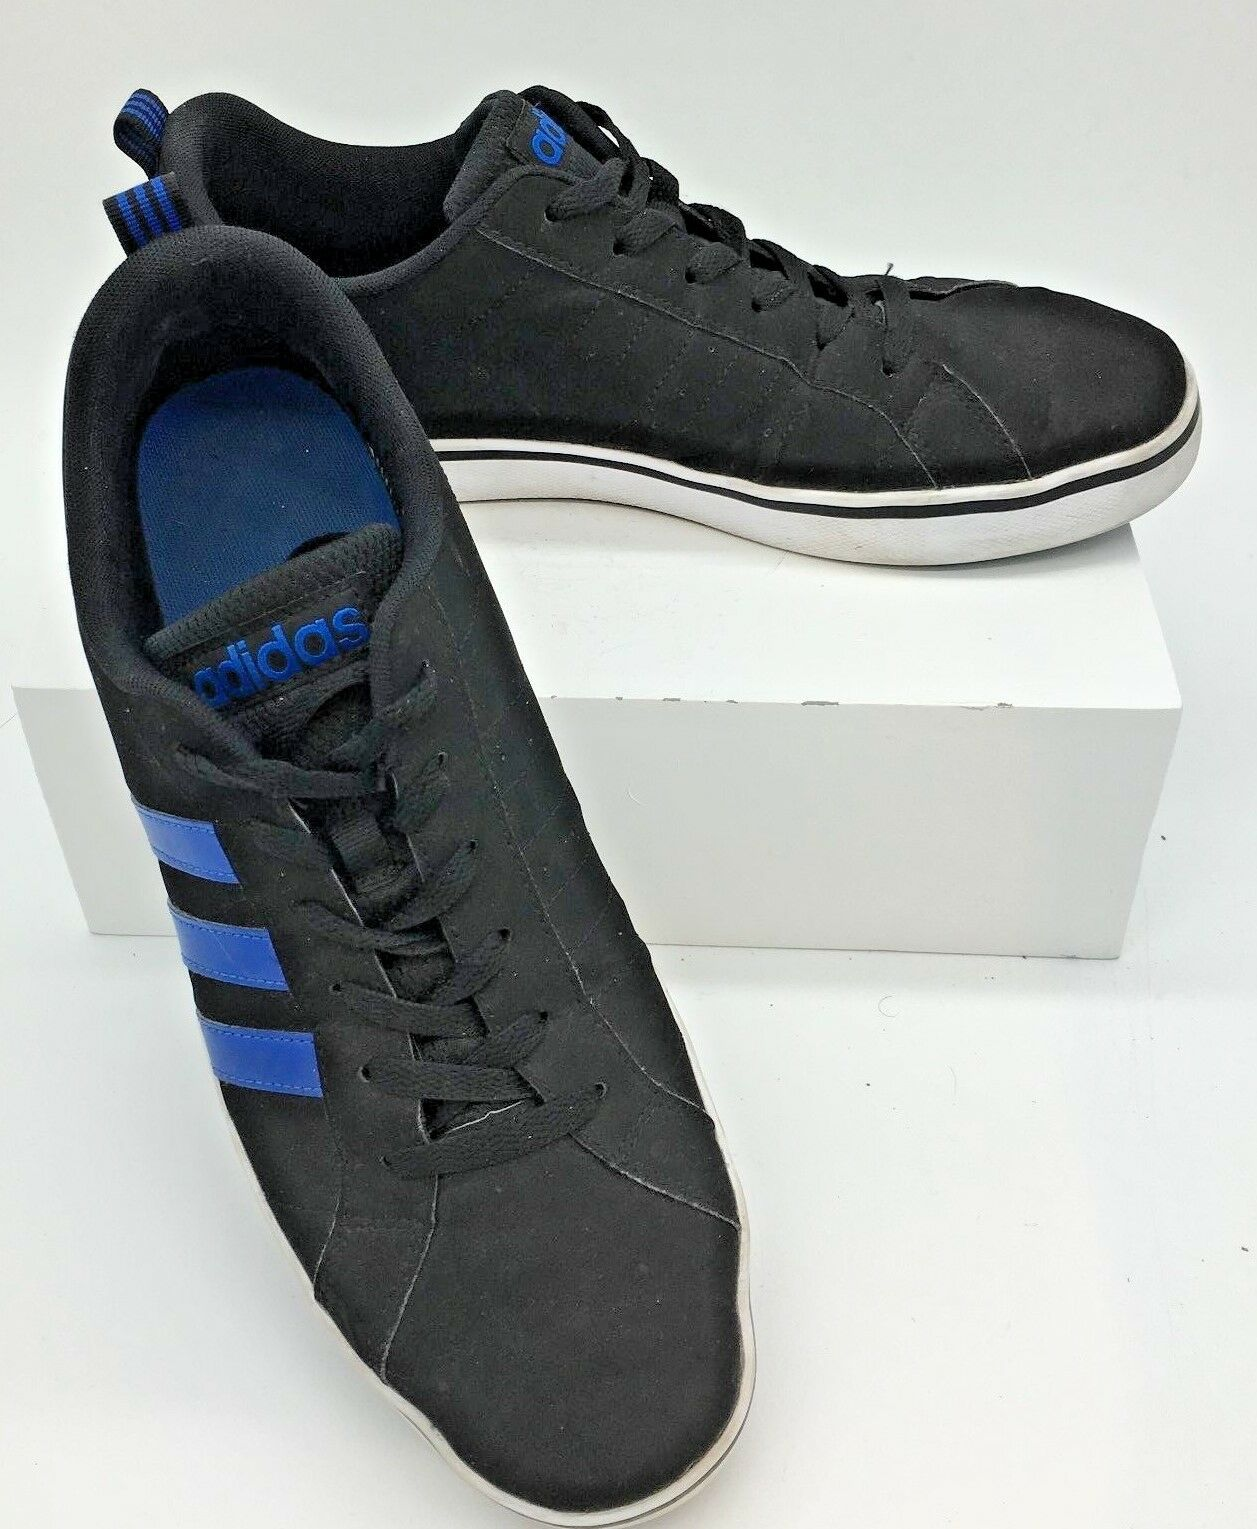 new products 0bb82 be78e Adidas Neo Pace VS Black  Blue Shoes Mens US Size 11 EU Size 45.5 AW4591 1  of 7Only 1 available ...